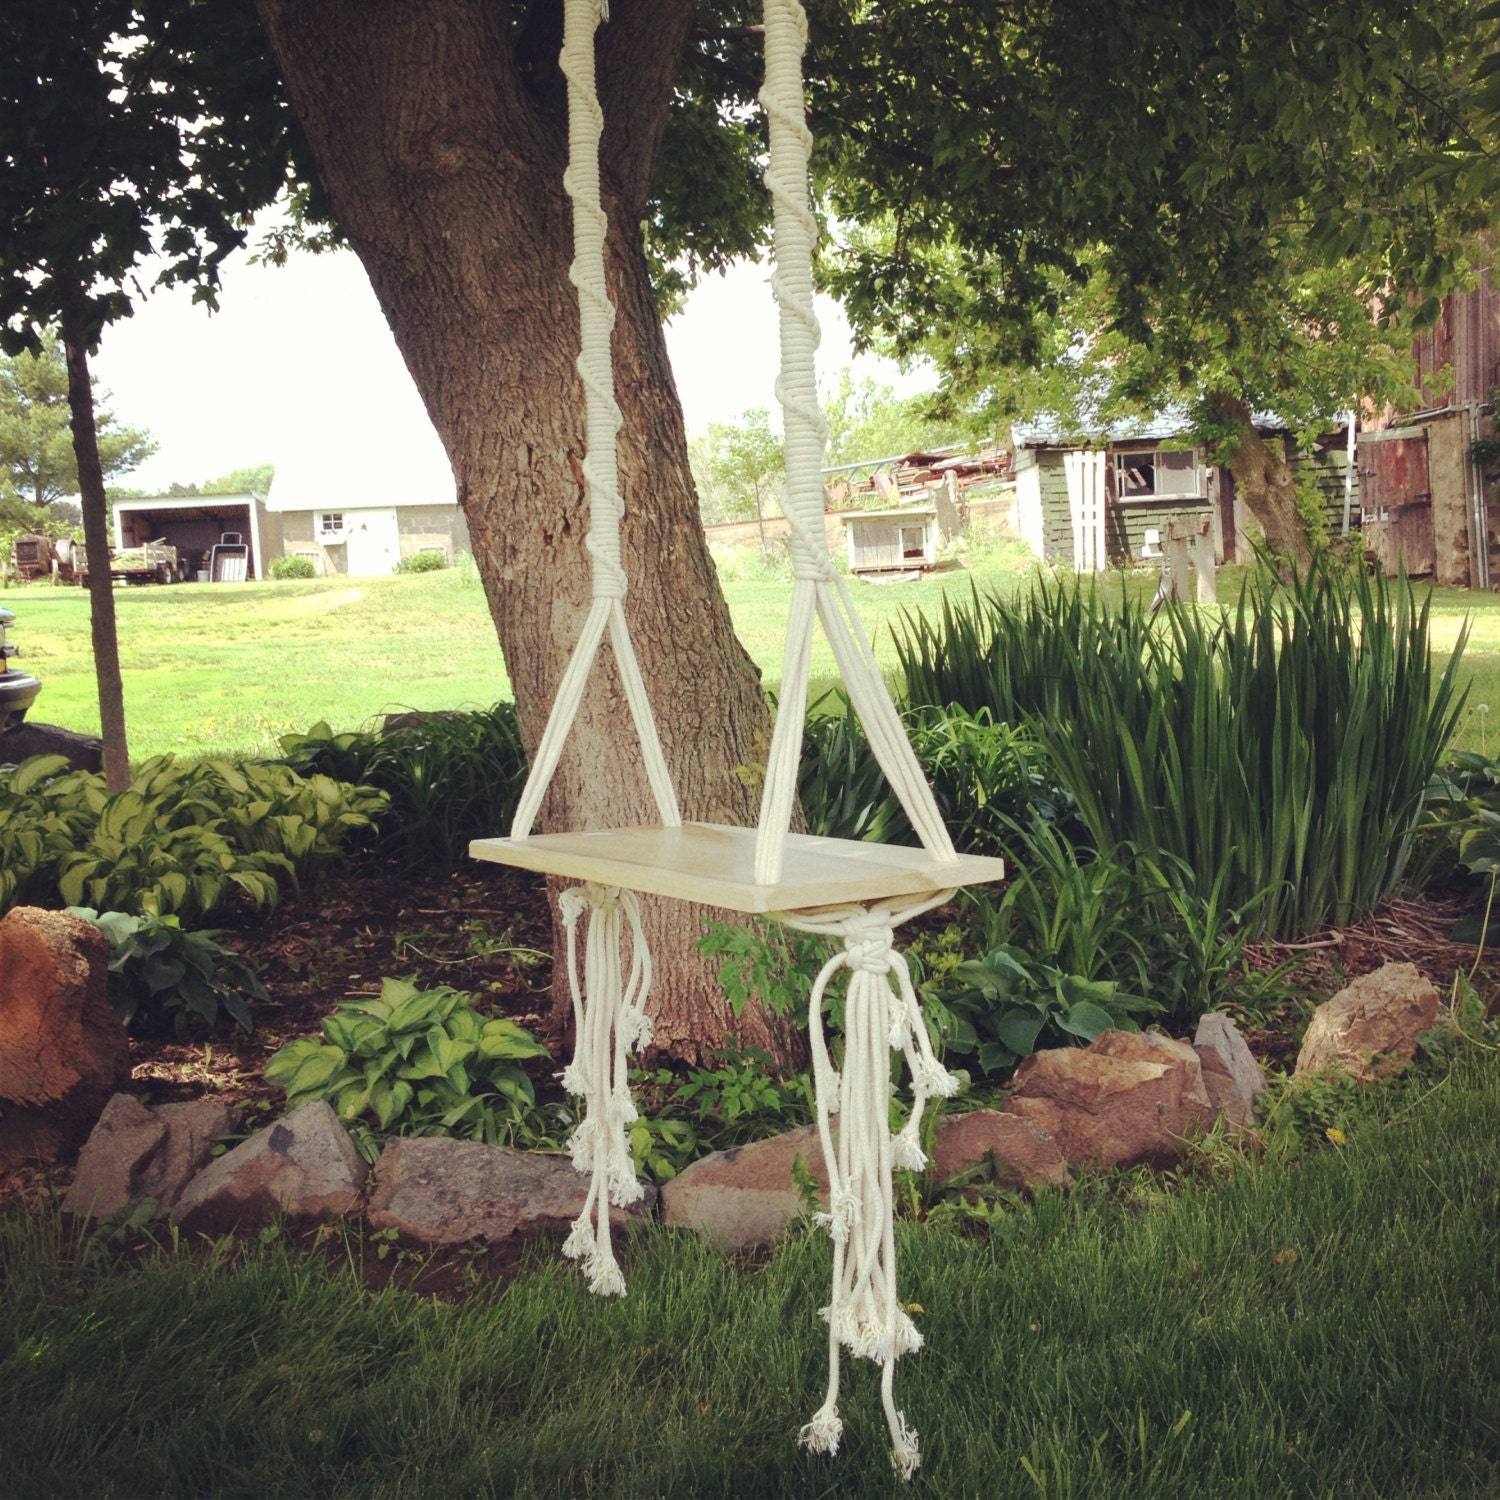 Tree swing macrame swing by thethrowbackdaze on etsy